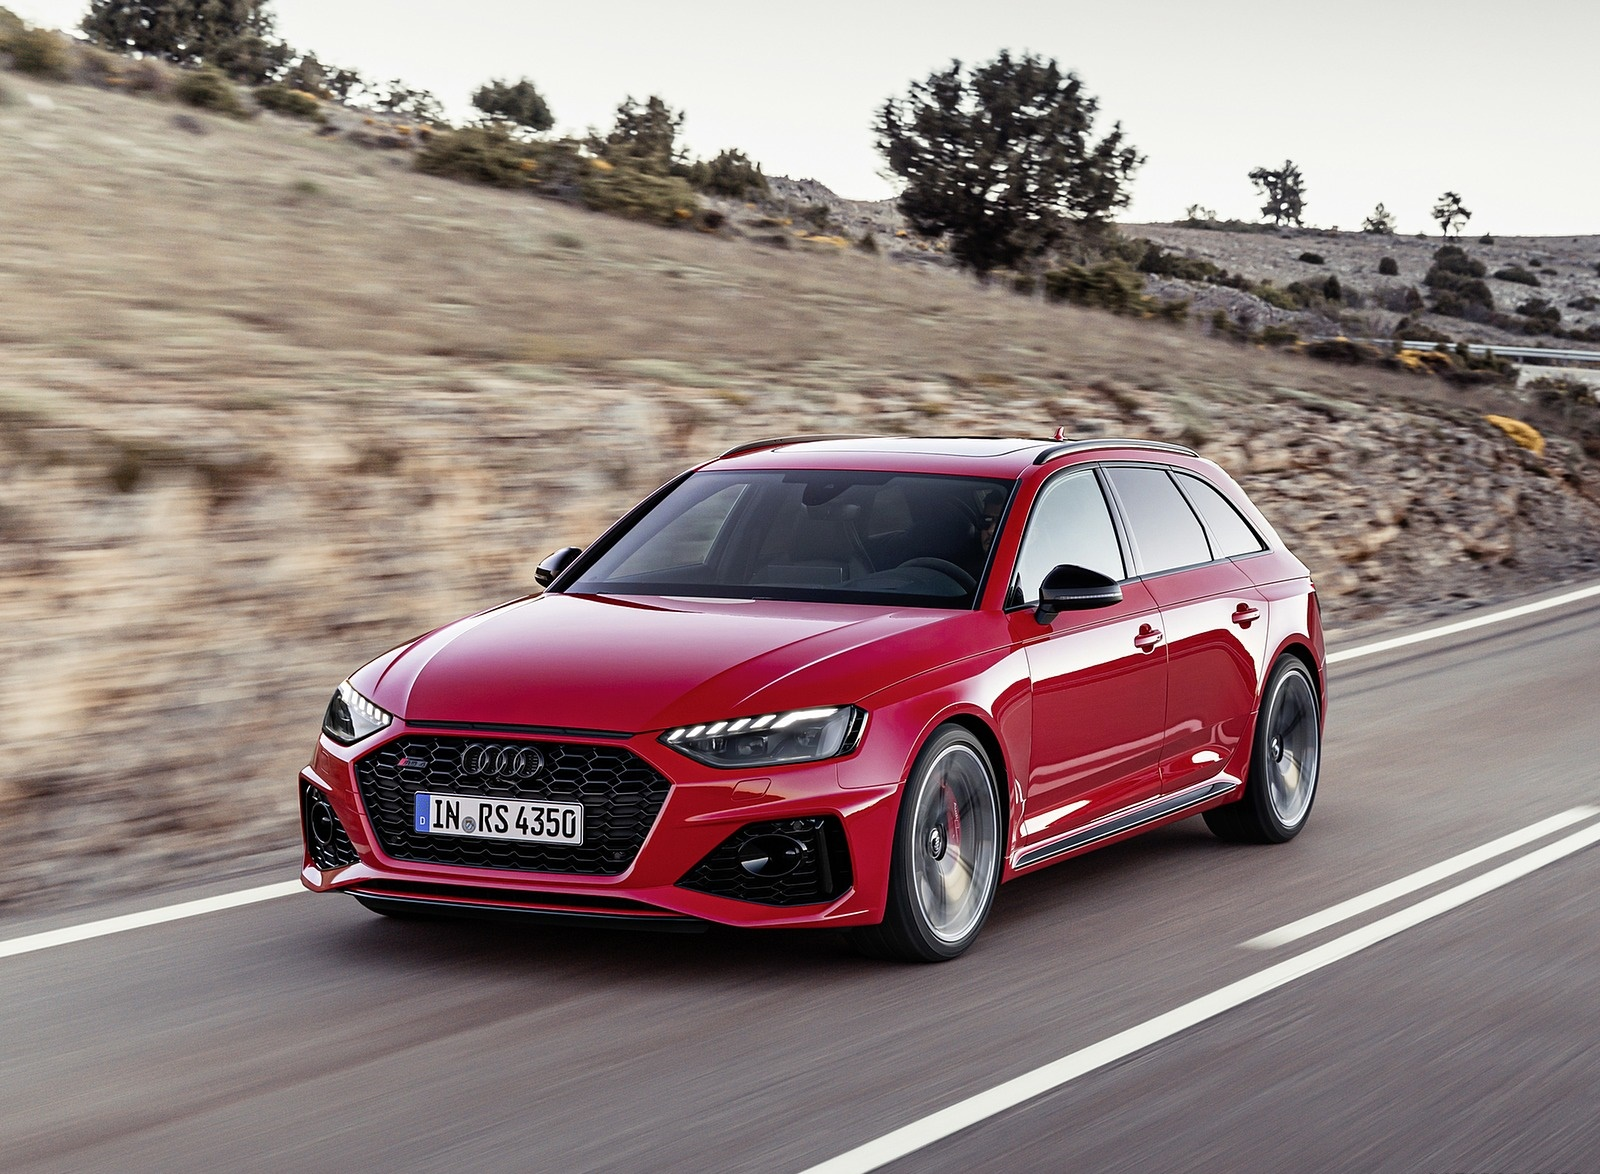 2020 Audi RS 4 Avant (Color: Tango Red) Front Three-Quarter Wallpapers (4)